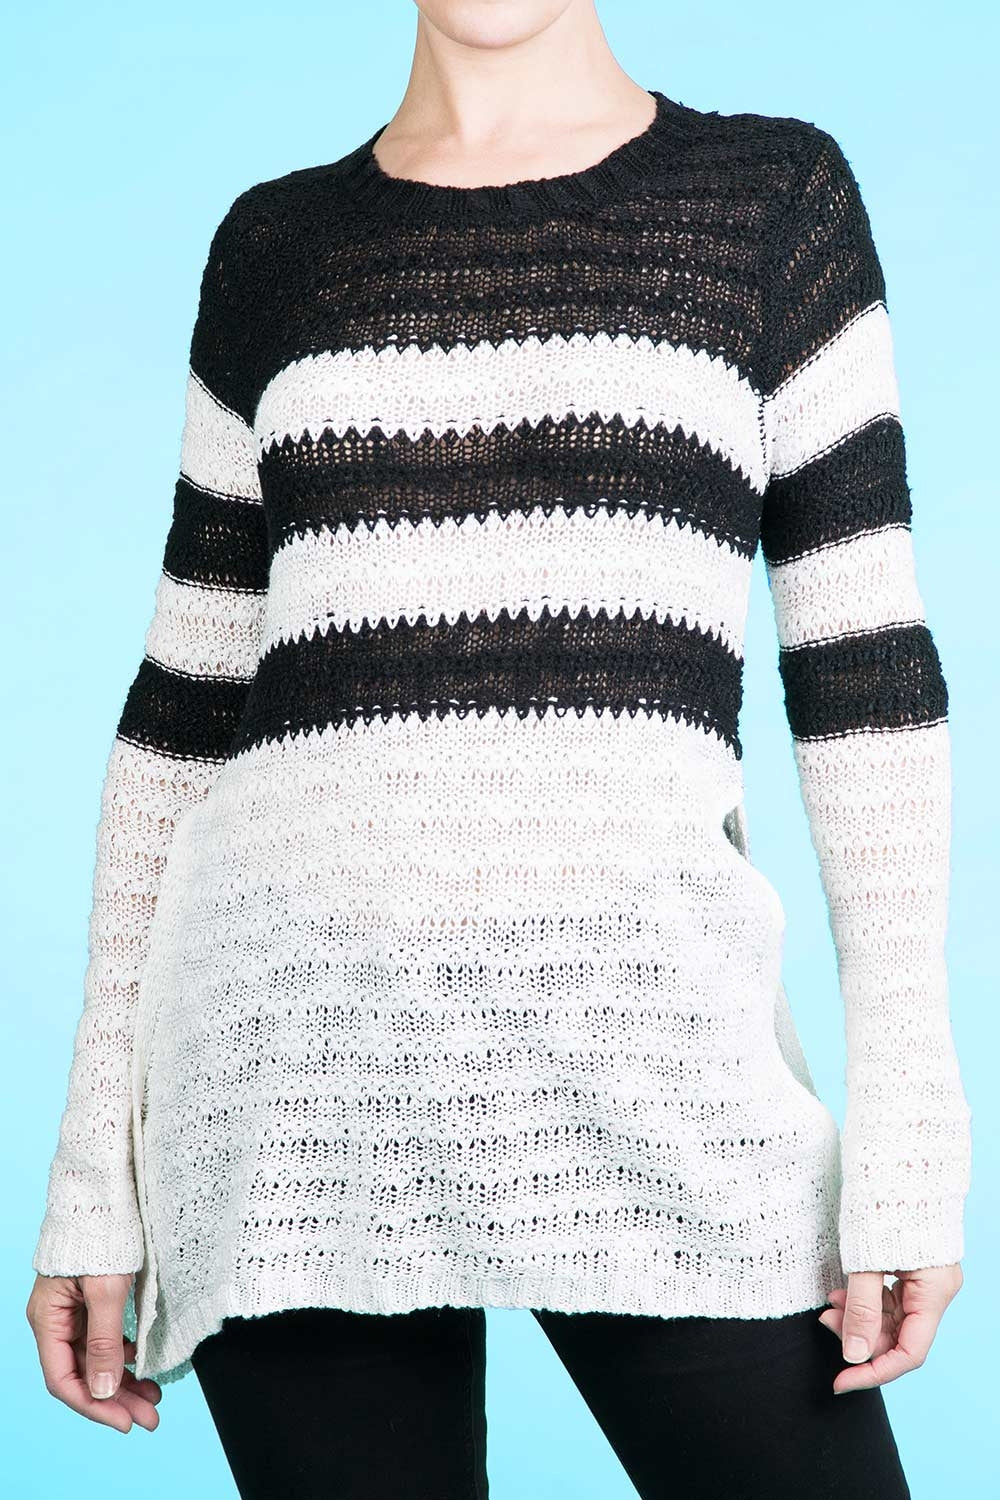 Type 4 Jailhouse Rock Sweater